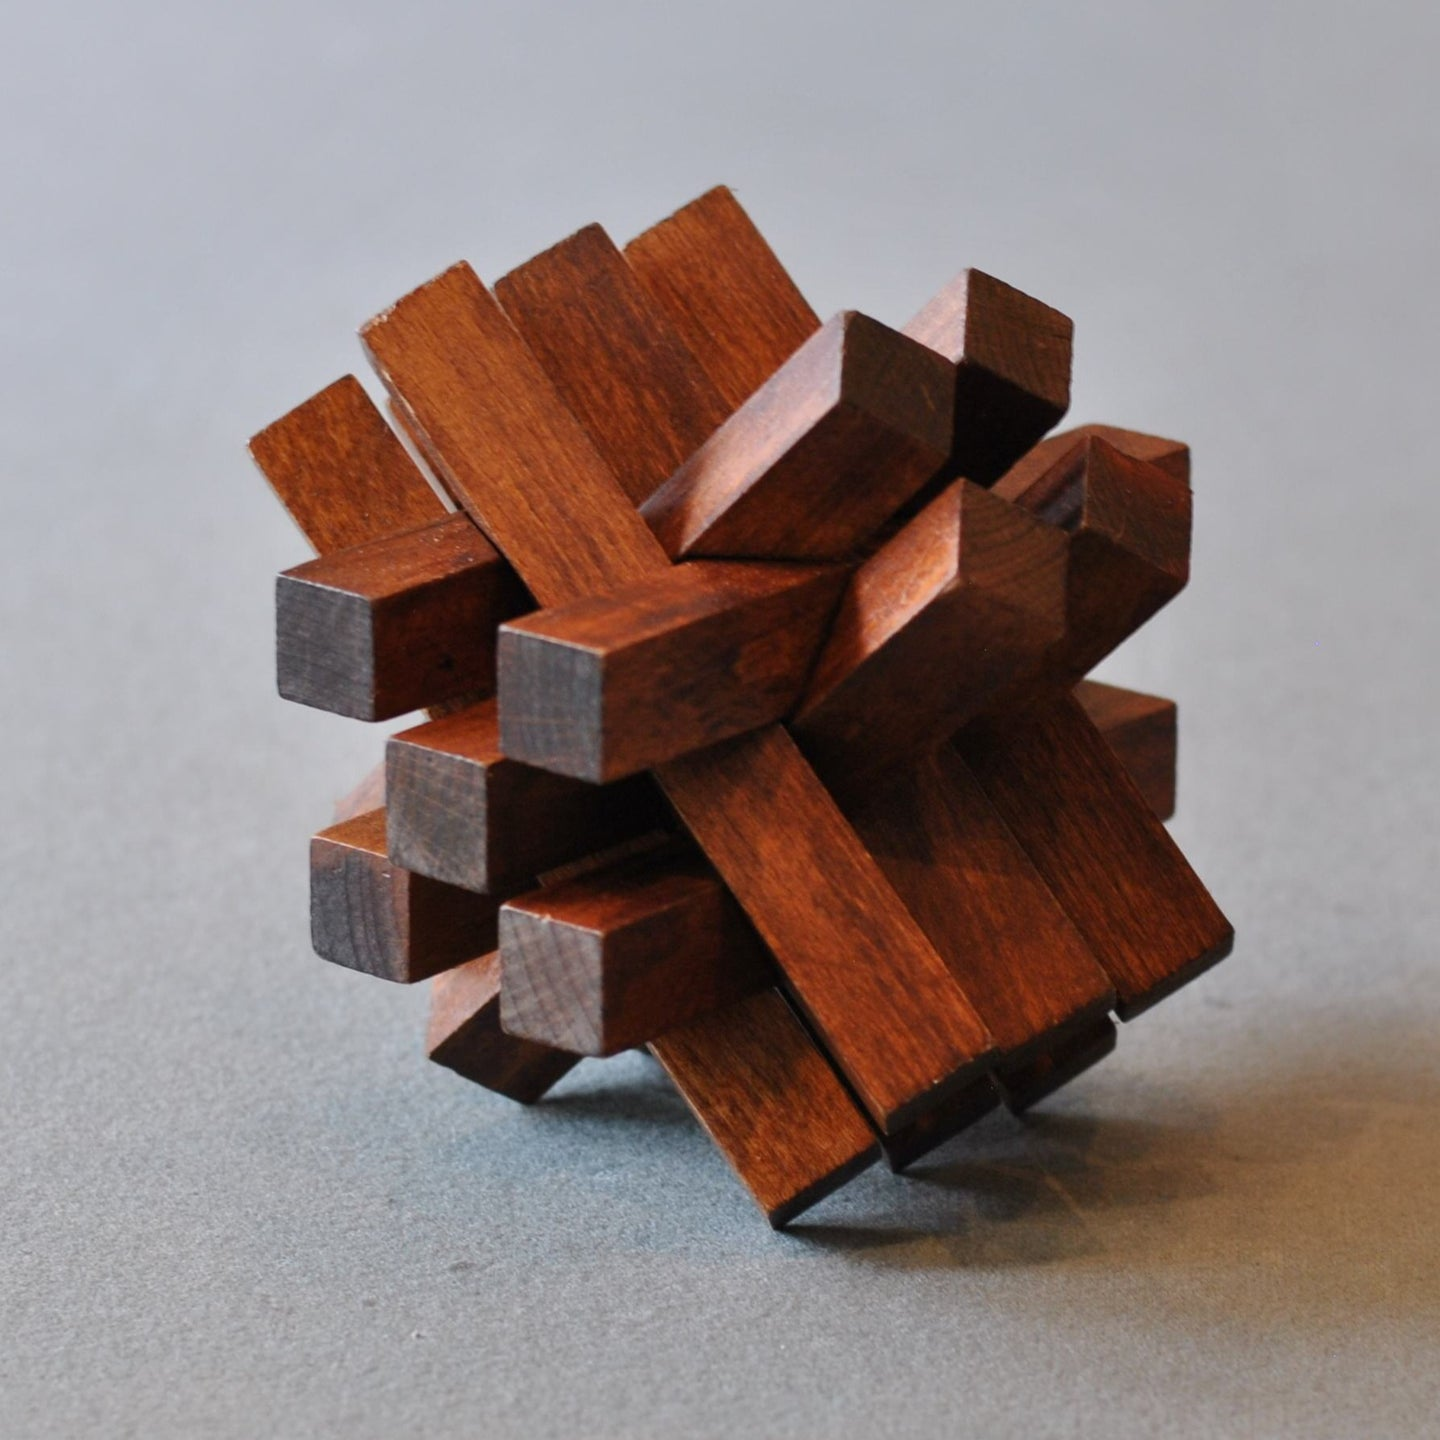 Chelsea Natural Wood Assembly Puzzle